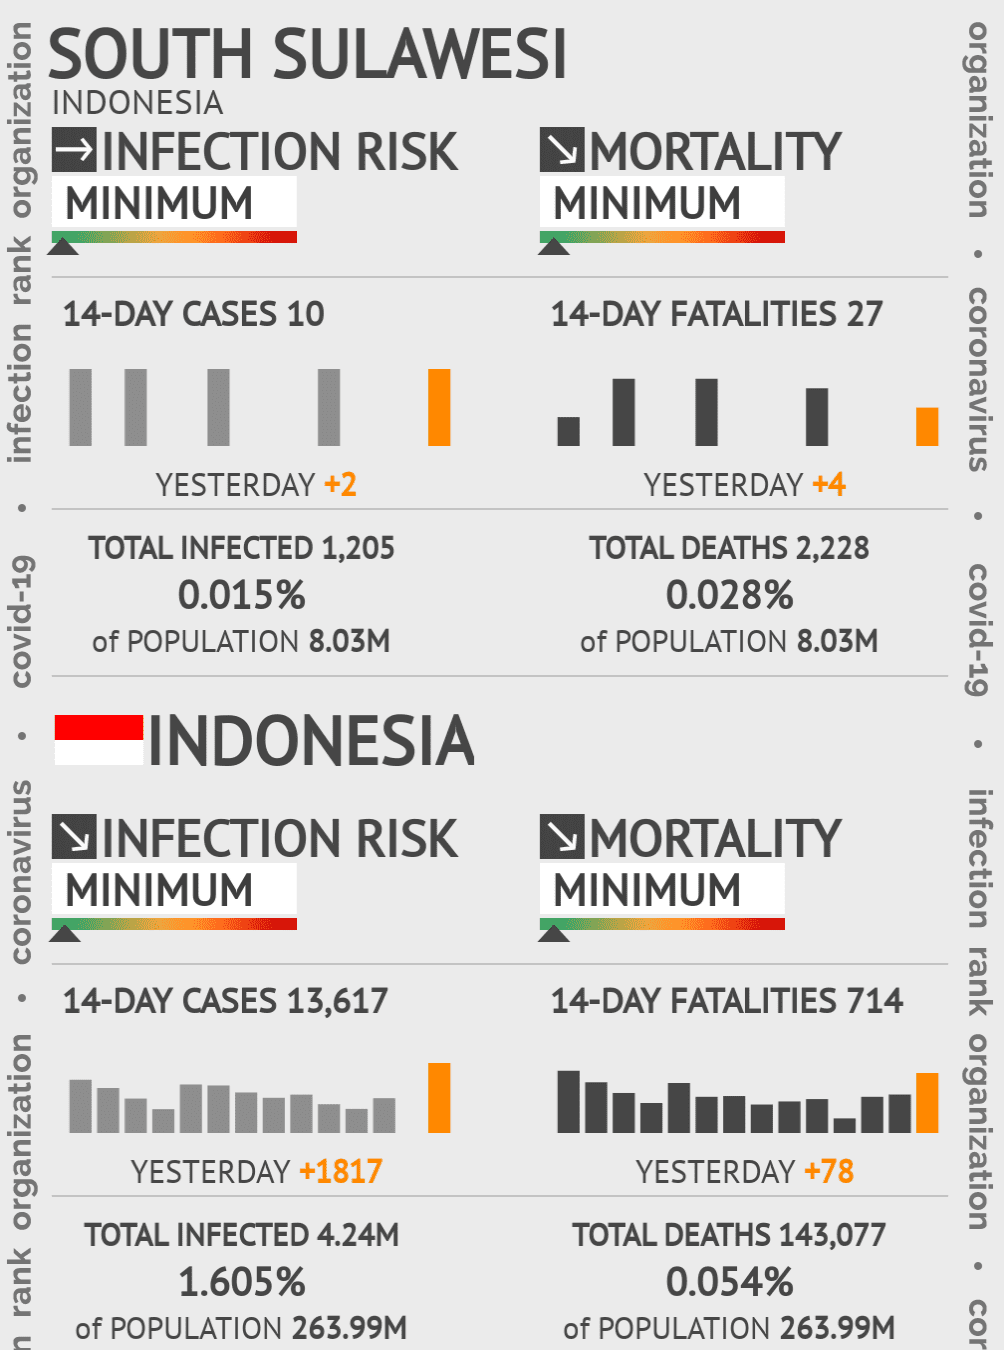 South Sulawesi Coronavirus Covid-19 Risk of Infection on March 03, 2021